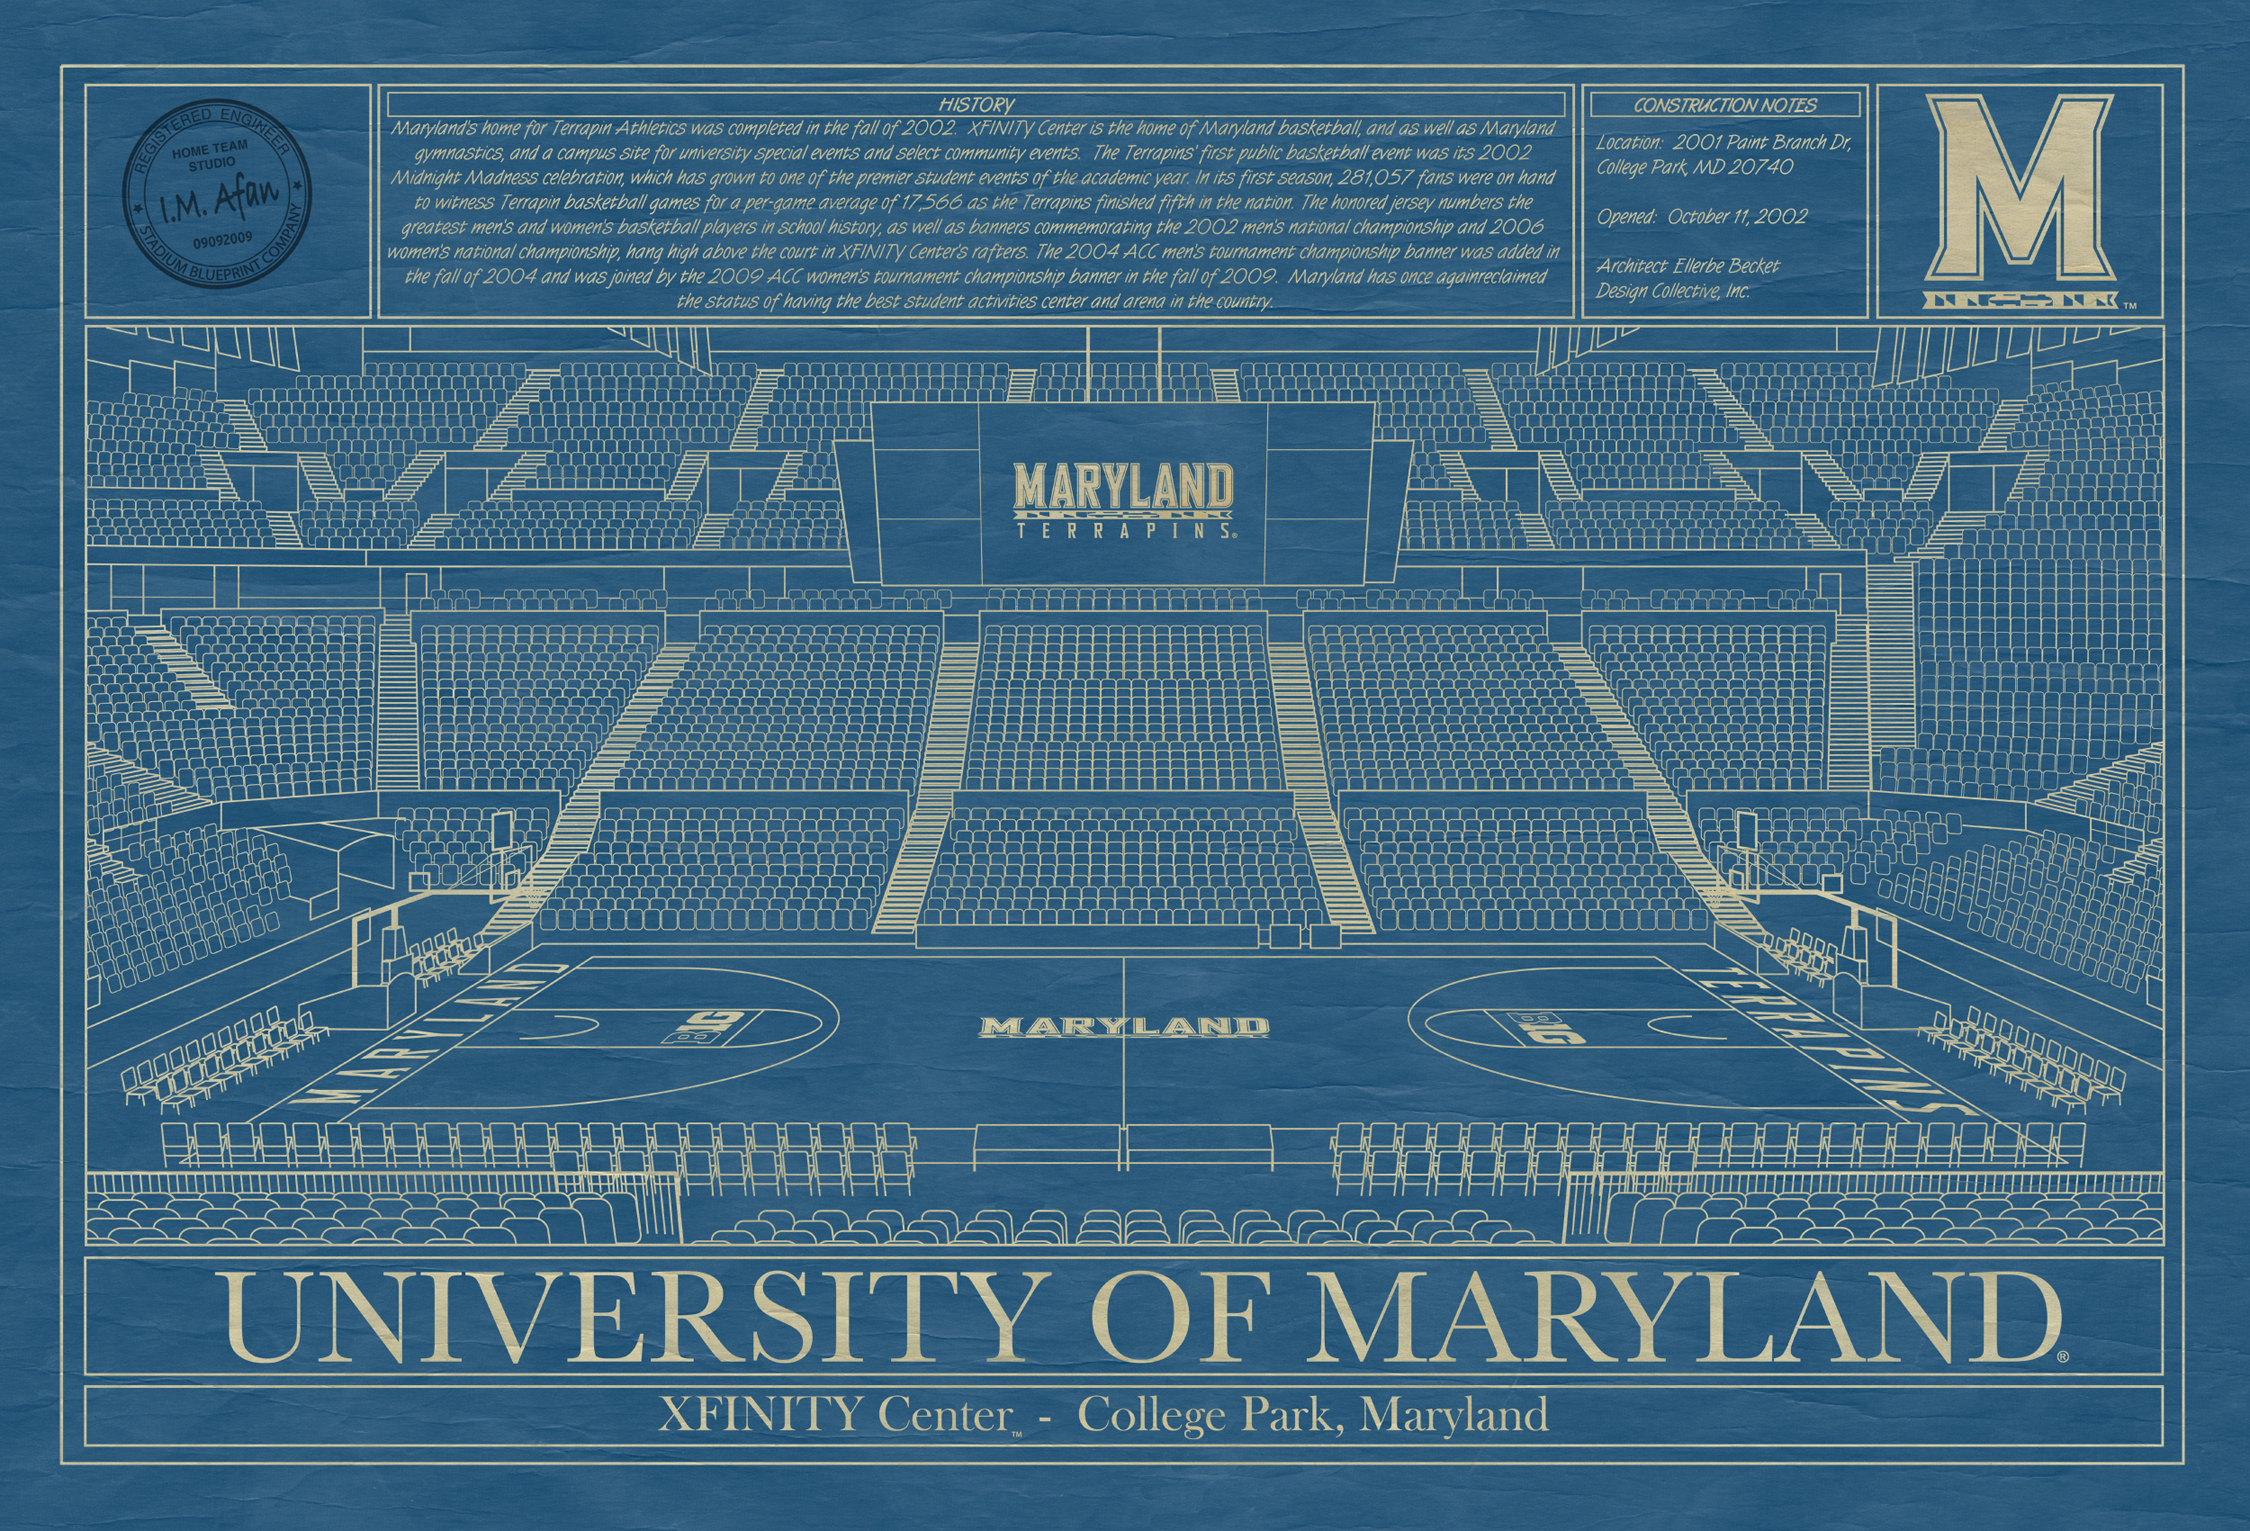 University of maryland archives stadium blueprint company maryland xfinity center college park blueprint art malvernweather Image collections